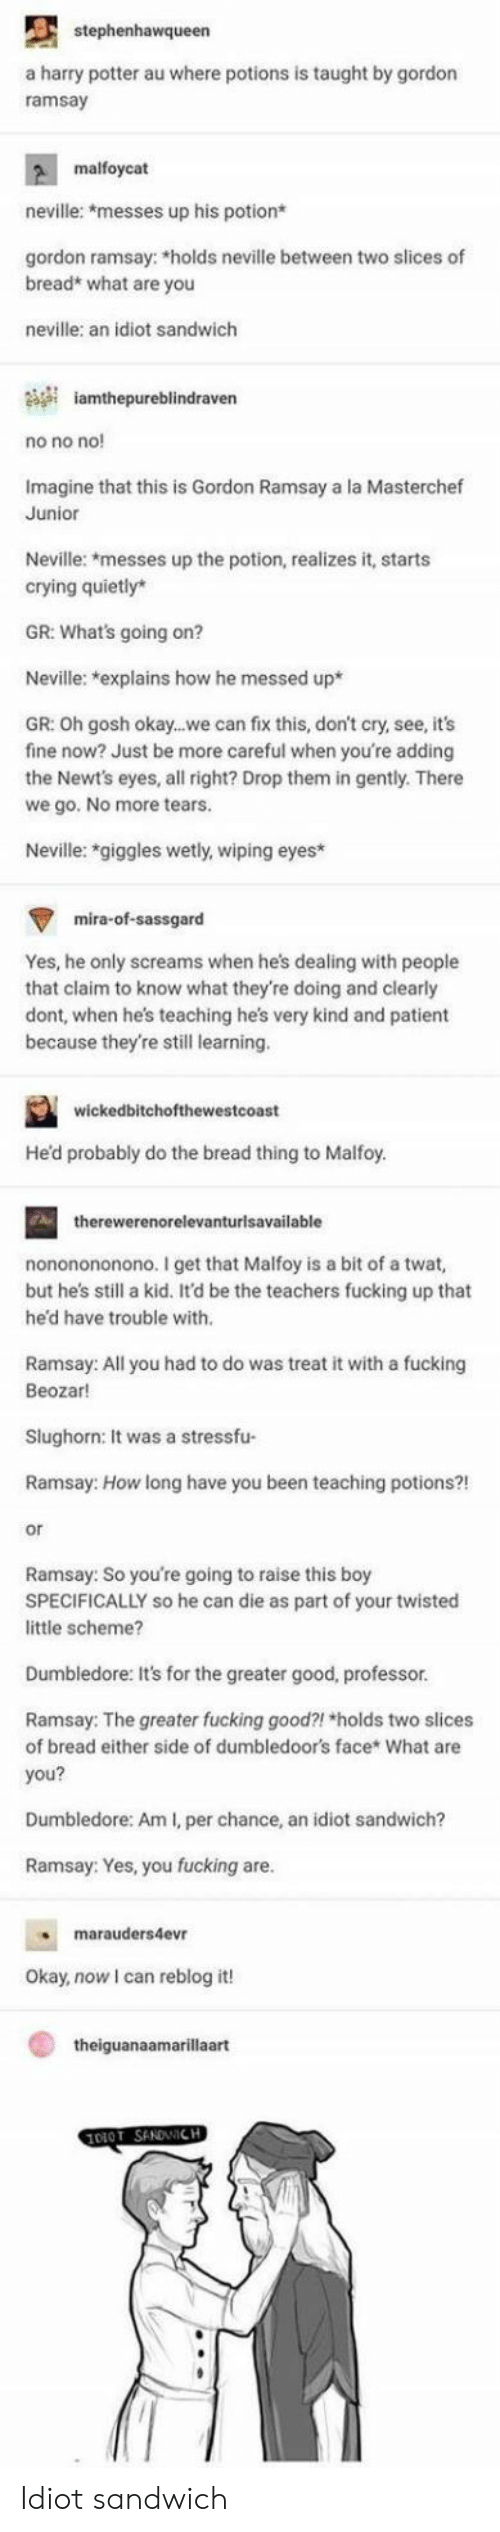 masterchef: stephenhawqueen  a harry potter au where potions is taught by gordon  ramsay  malfoycat  neville: *messes up his potion*  gordon ramsay: *holds neville between two slices of  bread* what are you  neville: an idiot sandwich  iamthepureblindraven  no no no  Imagine that this is Gordon Ramsay a la Masterchef  Junior  Neville: *messes up the potion, realizes it, starts  crying quietly*  GR: What's going on?  Neville: explains how he messed up*  GR: Oh gosh okay...we can fix this, don't cry, see, it's  fine now? Just be more careful when you're adding  the Newt's eyes, all right? Drop them in gently. There  we go. No more tears  Neville: *giggles wetly, wiping eyes  mira-of-sassgard  Yes, he only screams when he's dealing with people  that claim to know what they're doing and clearly  dont, when hes teaching he's very kind and patient  because they're stil learning  wickedbitchofthewestcoast  Hed probably do the bread thing to Malfoy  therewerenorelevanturlsavailable  nononononono. I get that Malfoy is a bit of a twat,  but hes still a kid. It'd be the teachers fucking up that  he'd have trouble with  Ramsay: All you had to do was treat it with a fucking  Beozar!  Slughorn: It was a stressfu-  Ramsay: How long have you been teaching potions?!  or  Ramsay: So you're going to raise this boy  SPECIFICALLY so he can die as part of your twisted  little scheme?  Dumbledore: It's for the greater good, professor  Ramsay: The greater fucking good?! holds two slices  of bread either side of dumbledoor's face* What are  you?  Dumbledore: Am I, per chance, an idiot sandwich?  Ramsay: Yes, you fucking are  marauders4evr  Okay, now I can reblog it!  theiguanaamarillaart Idiot sandwich